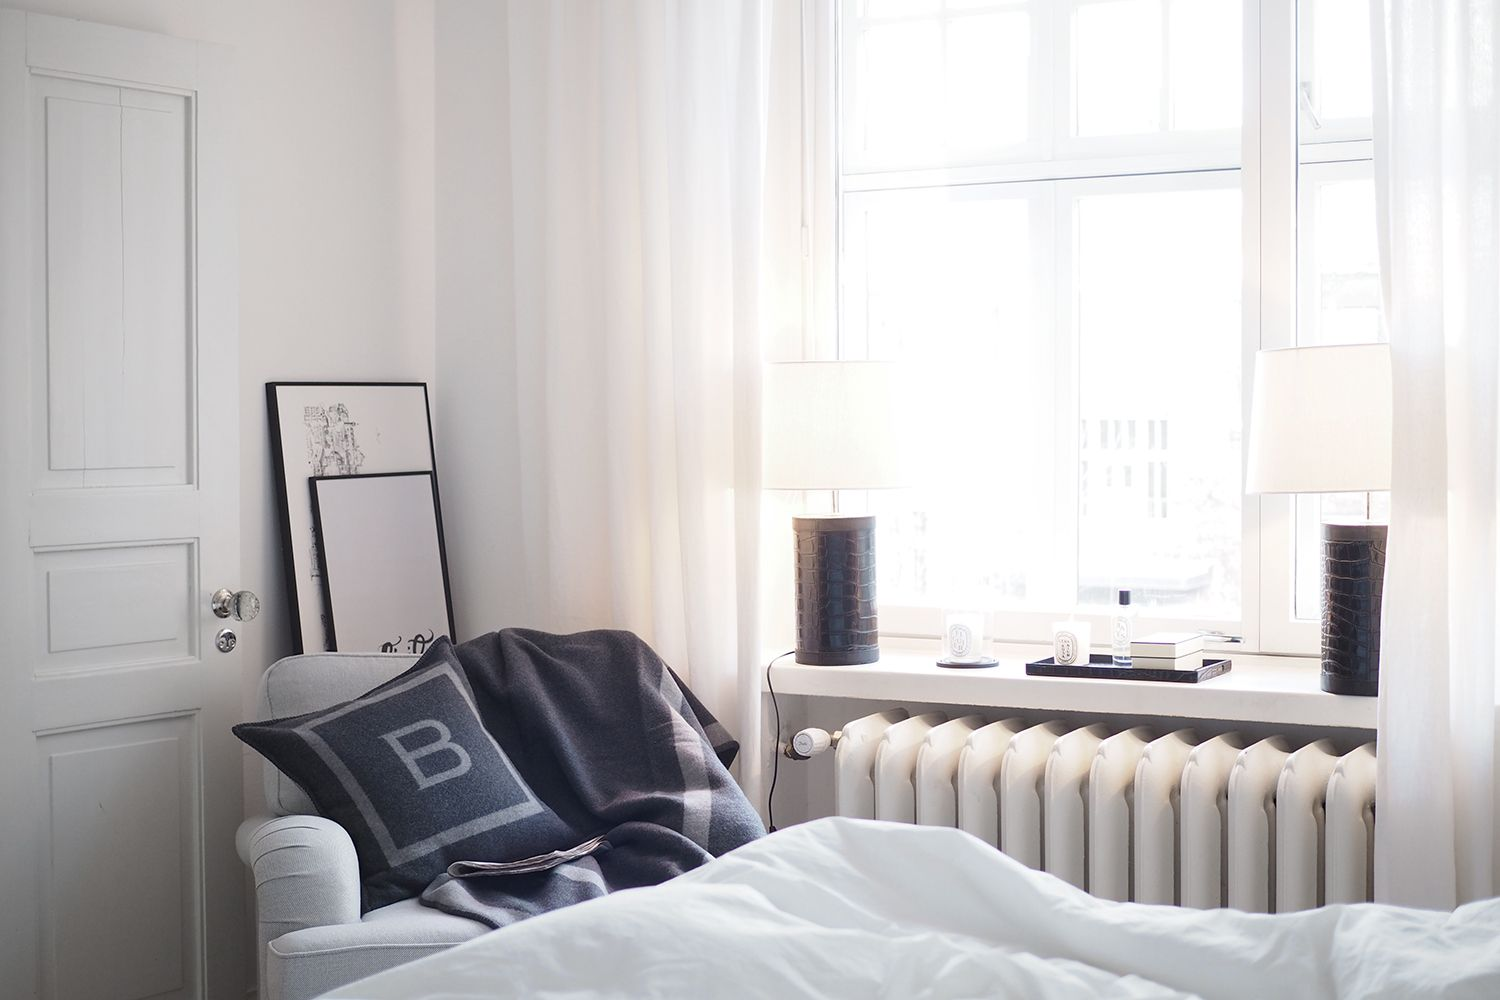 C and the city - Cozy corner in the bedroom - Furninova chair, Balmuir B-logo throw and pillow, Iittala Vakka -storage box and Diptyque candles - read more on the blog: http://www.idealista.fi/charandthecity/2016/11/08/3-vinkkia-talvikautena